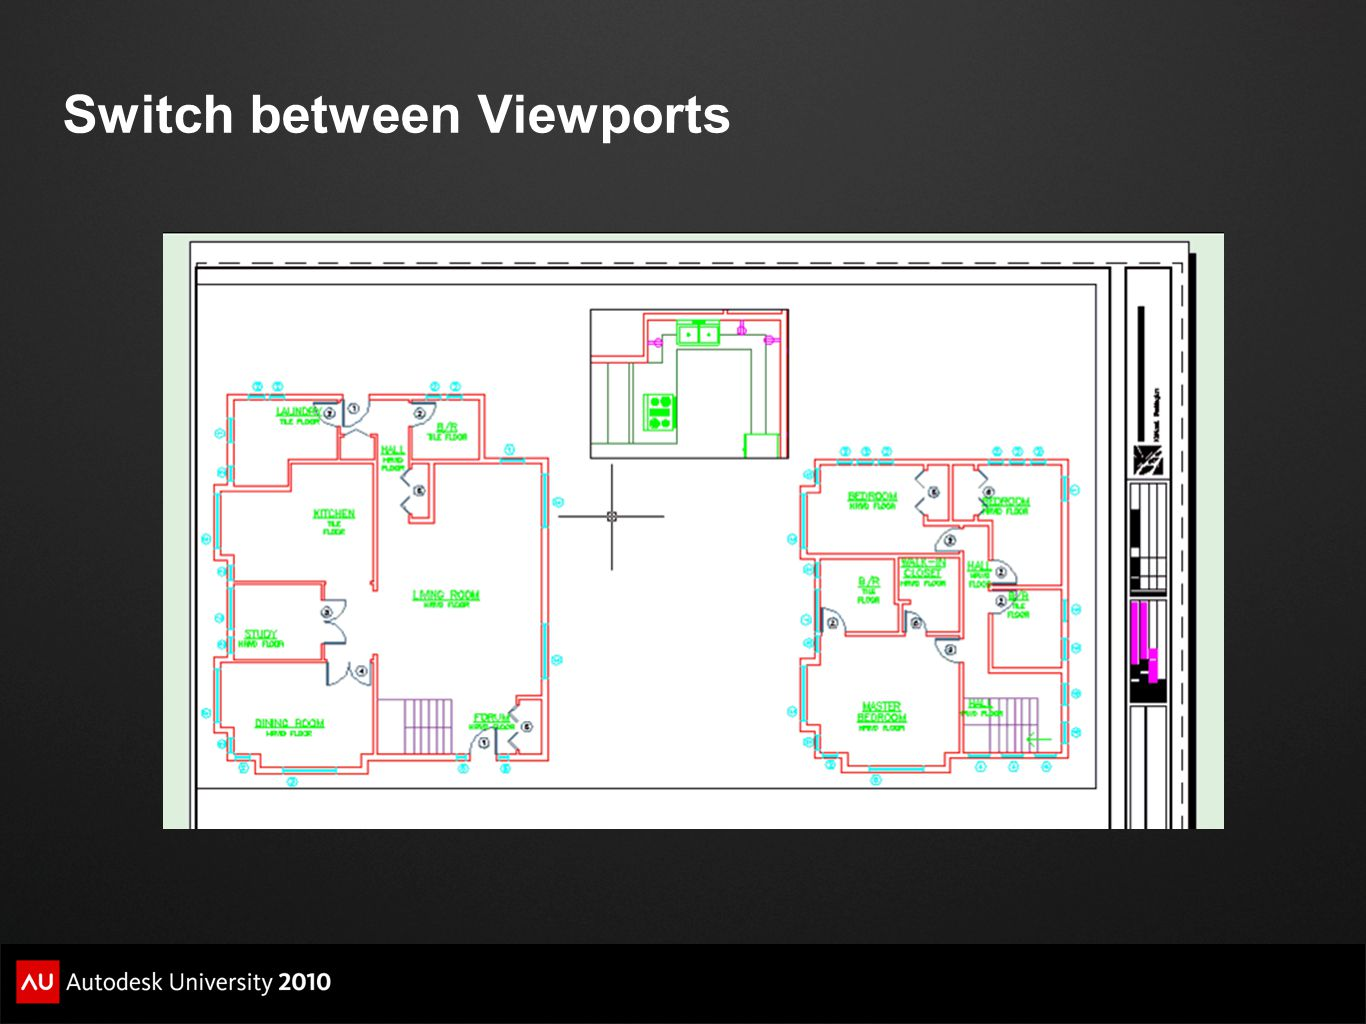 Switch between Viewports